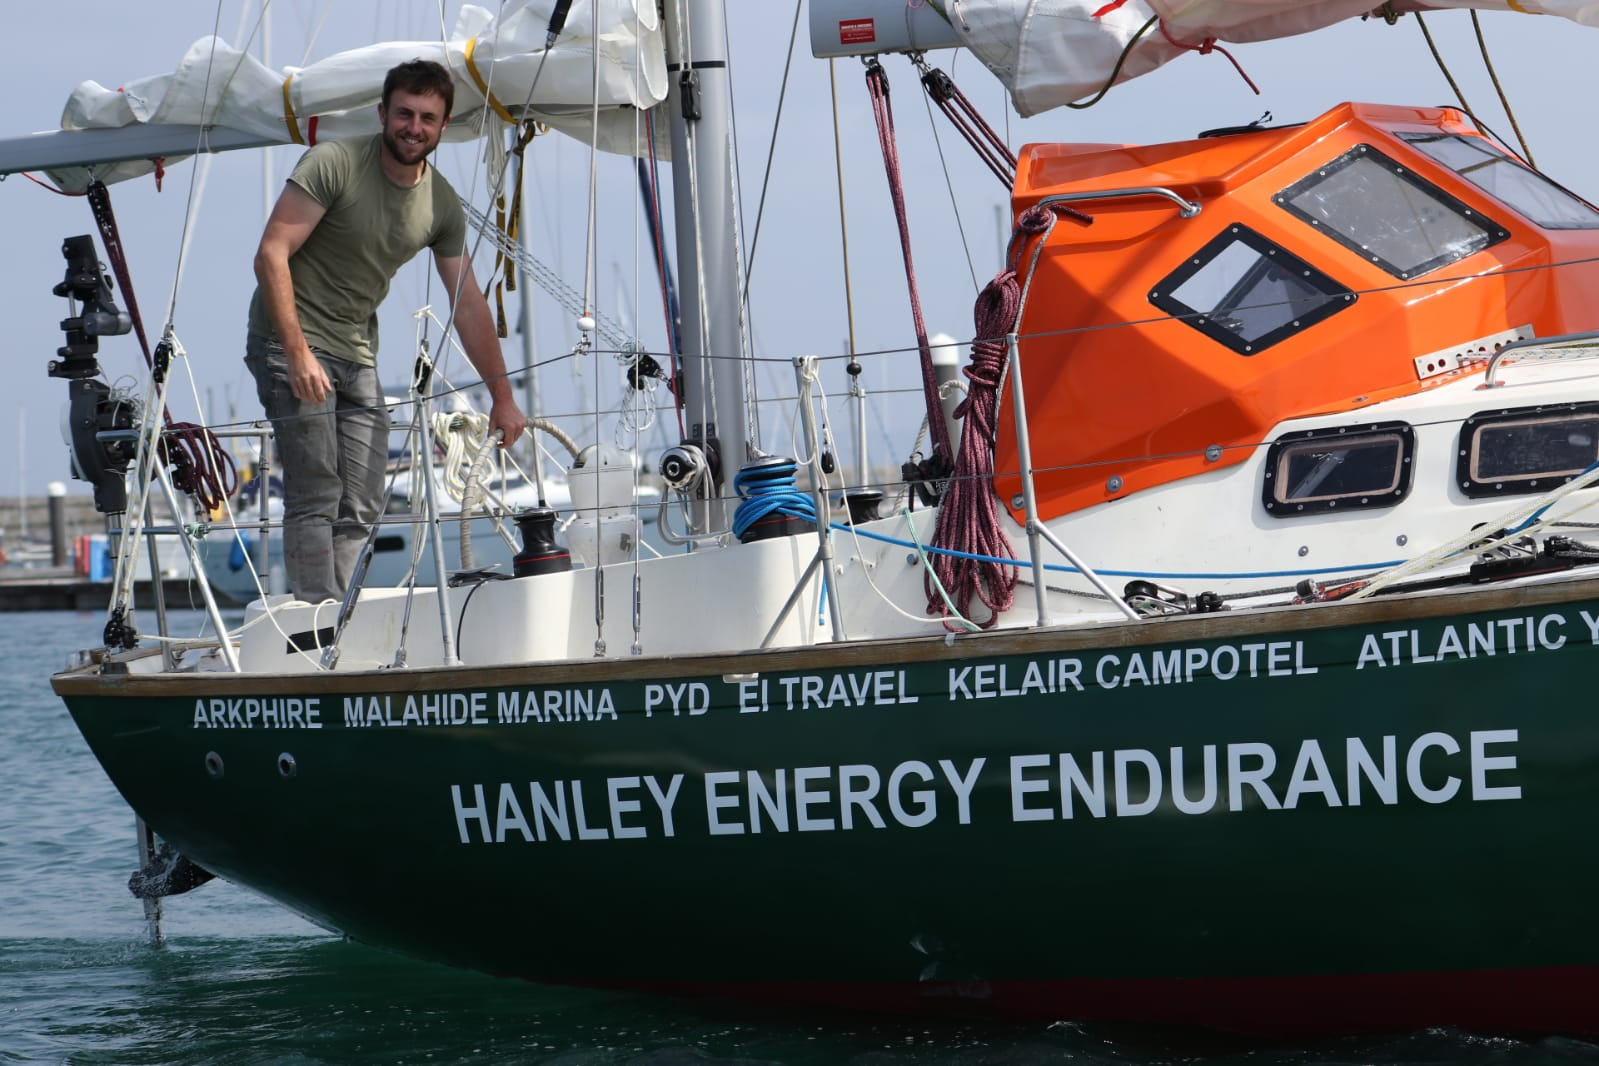 Irish solo sailer, Gregor McGuckin preparing for the Golden Globe race with Hanley Energy as headline sponsor